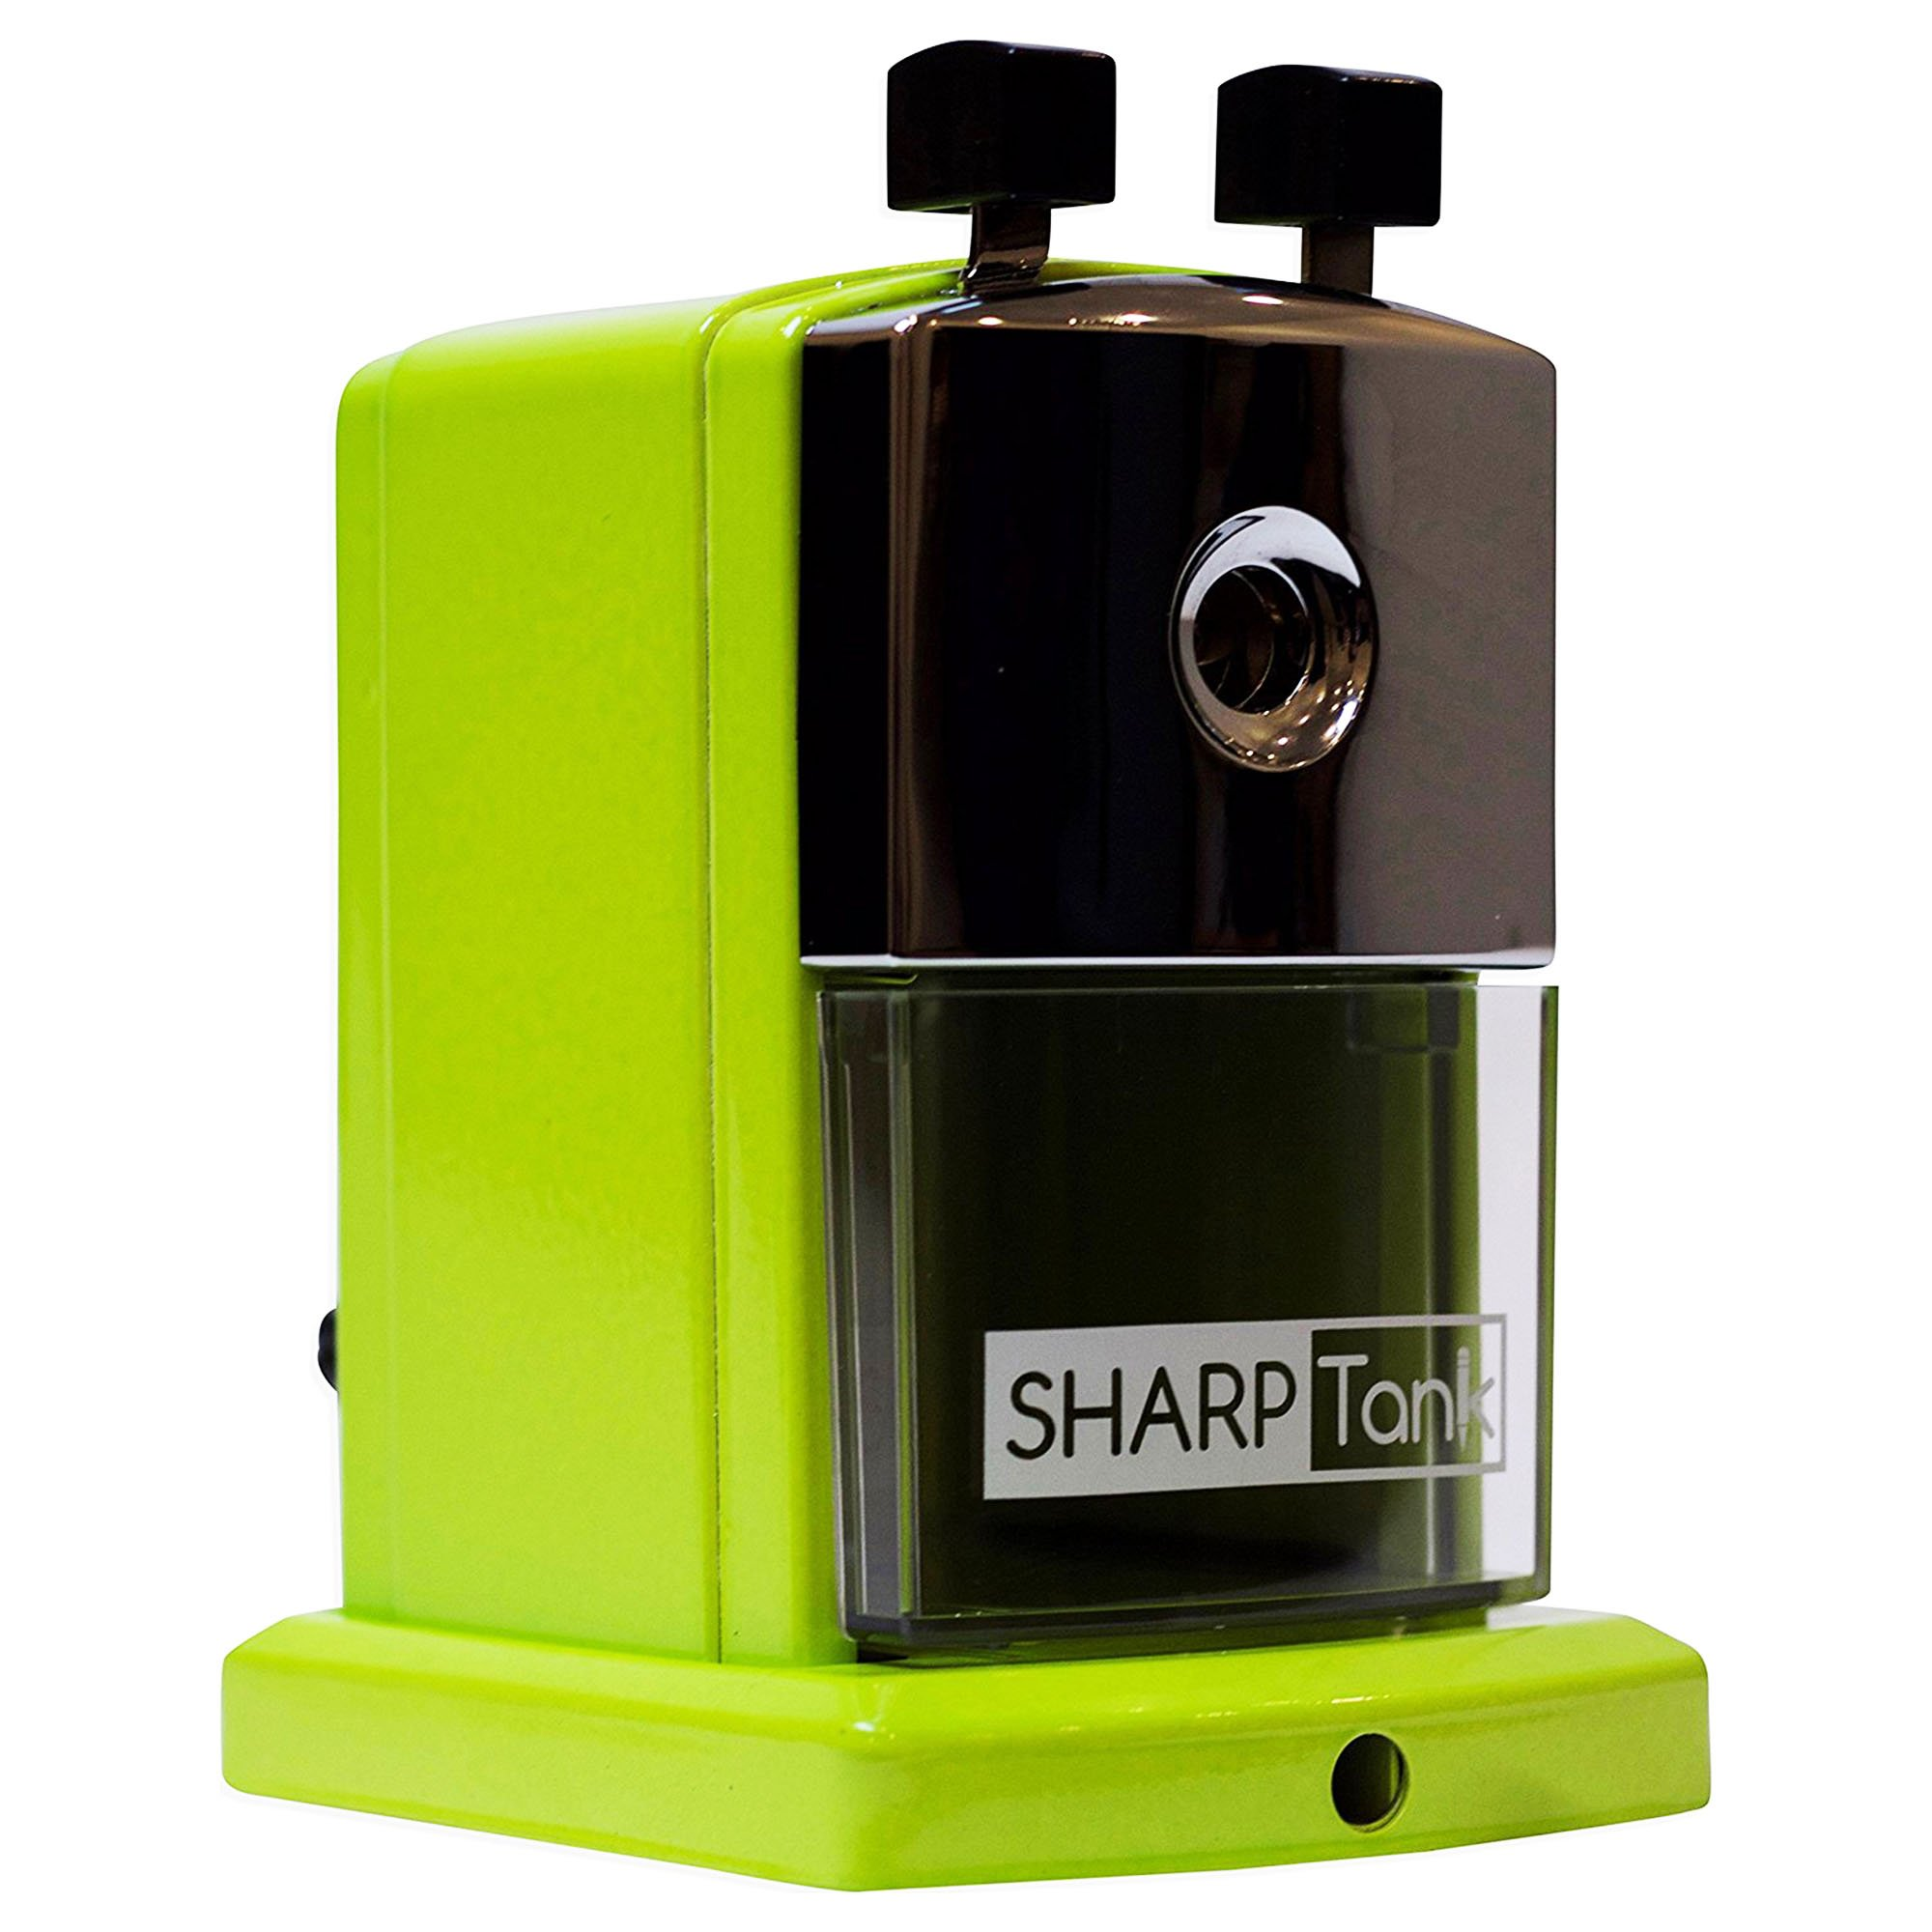 SharpTank - Portable Pencil Sharpener (Key Lime Green) - Compact & Quiet Classroom Sharpener That Gets Straight to The Point!